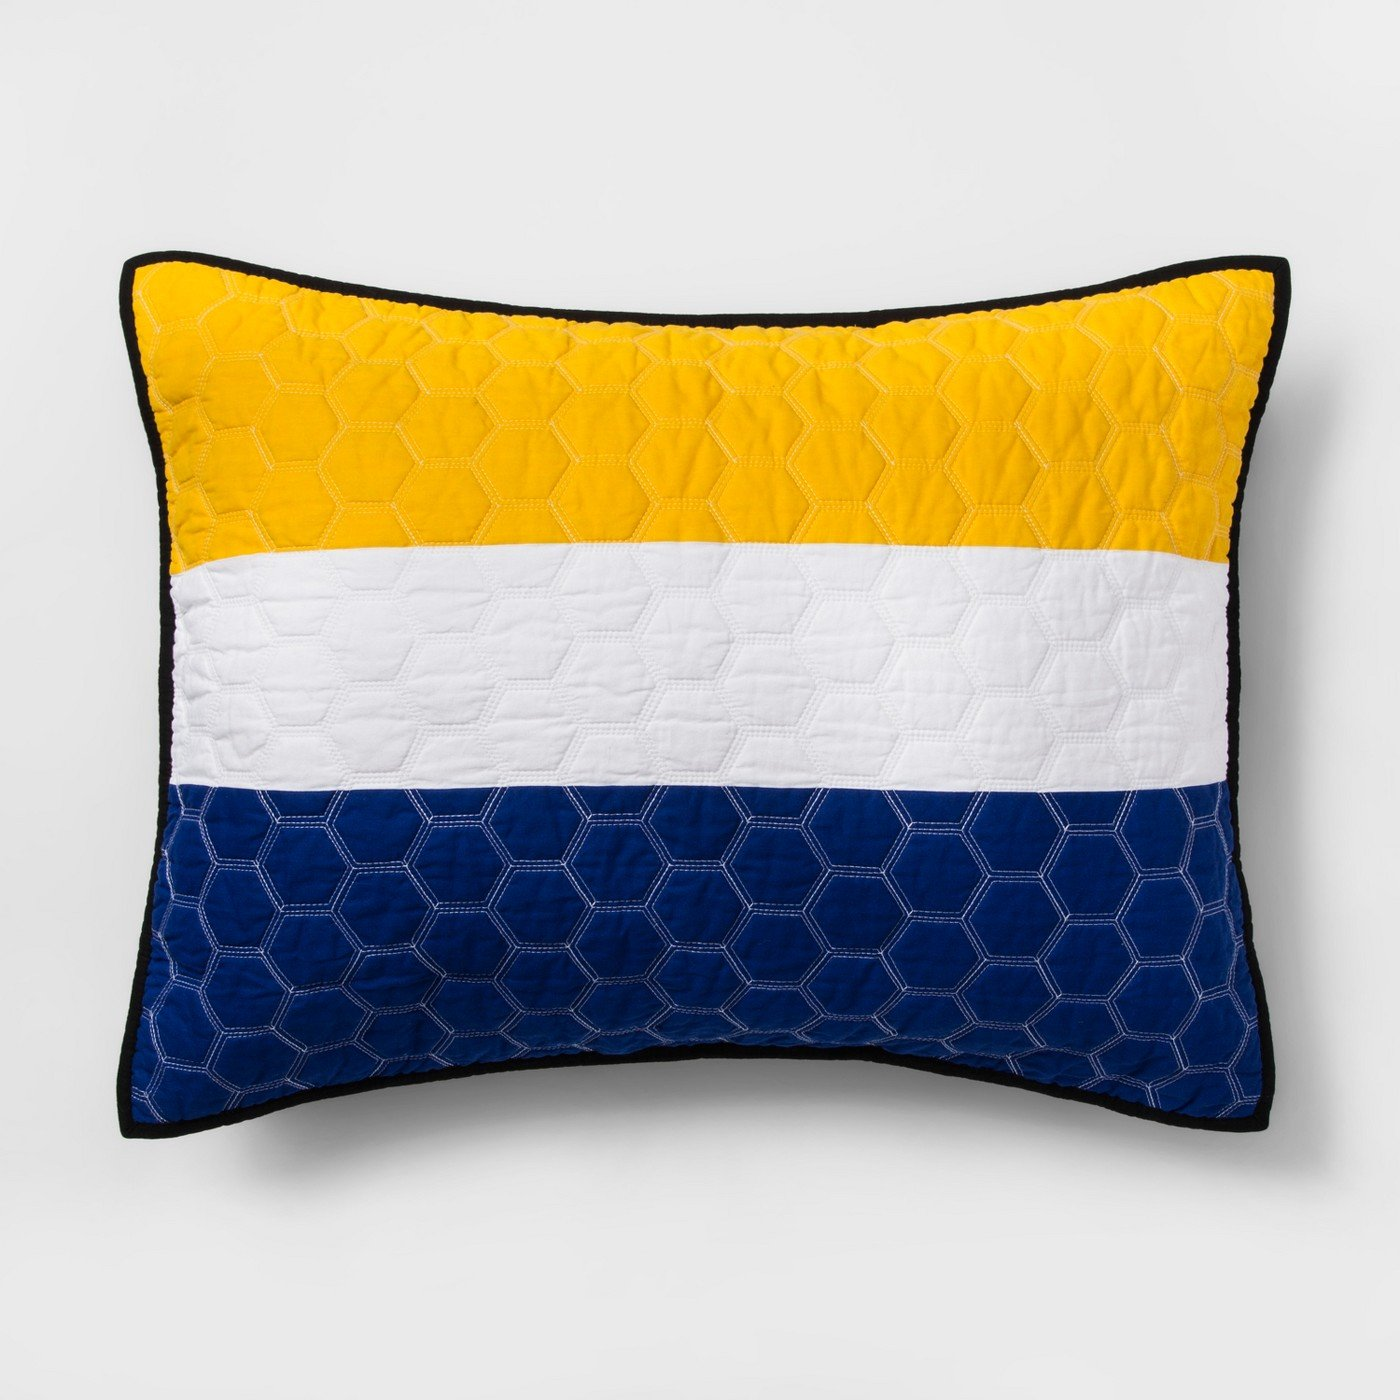 Pillowfort Gray Sports Stripes Quilted Cotton Standard Pillow Sham - Yellow, Blue, White